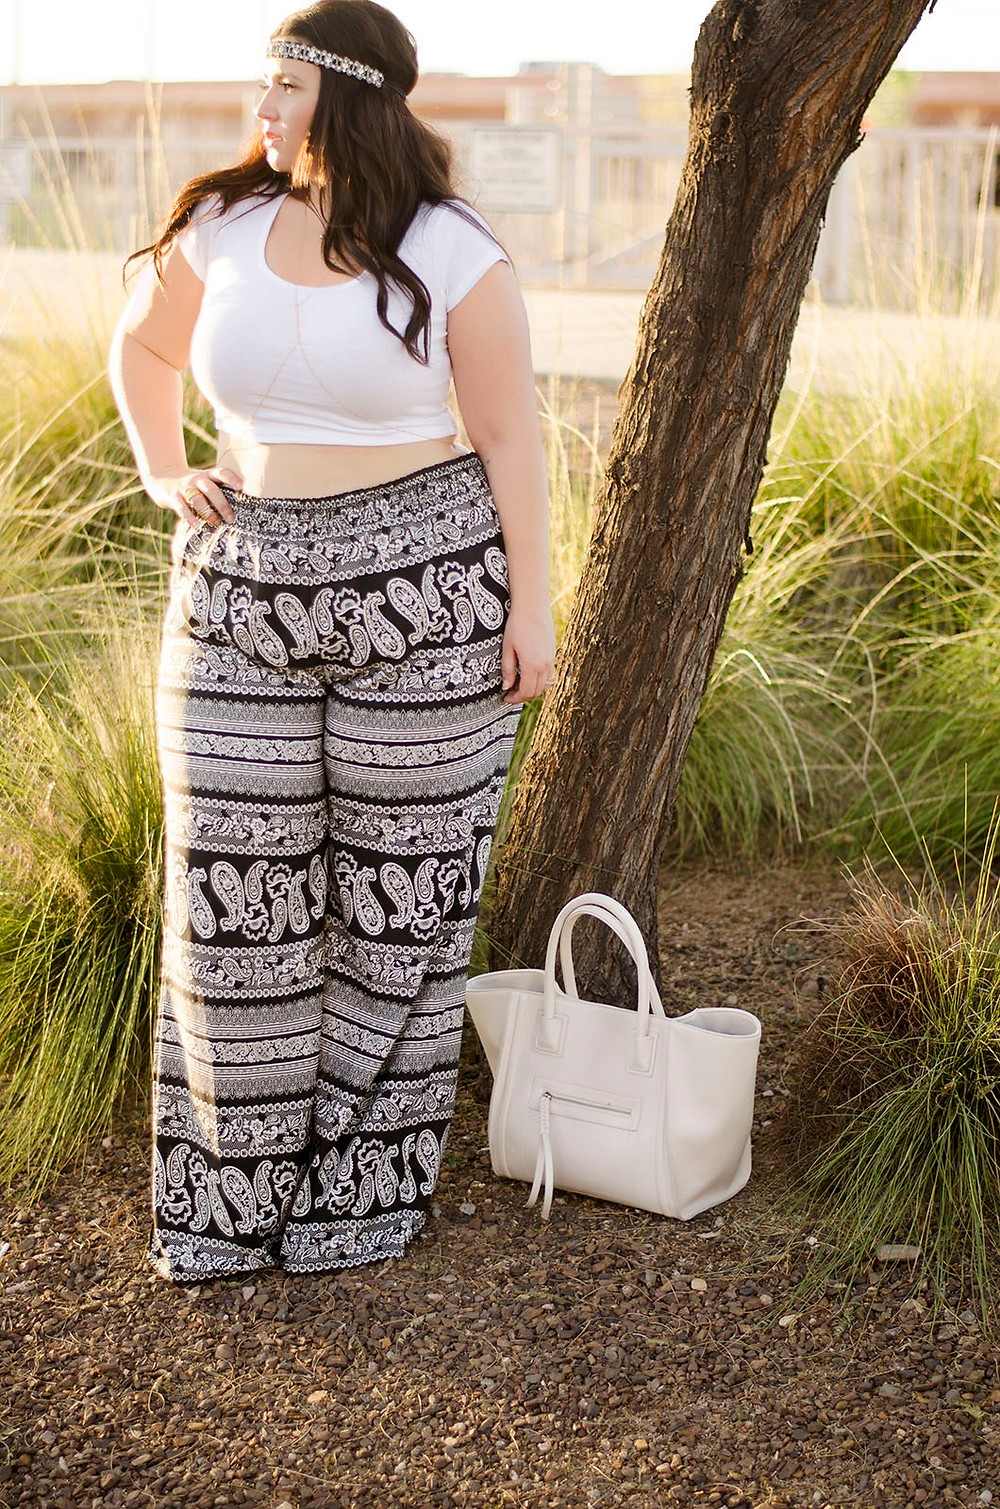 crystal coons boho chic plus size festival outfits charlotte russe plus review